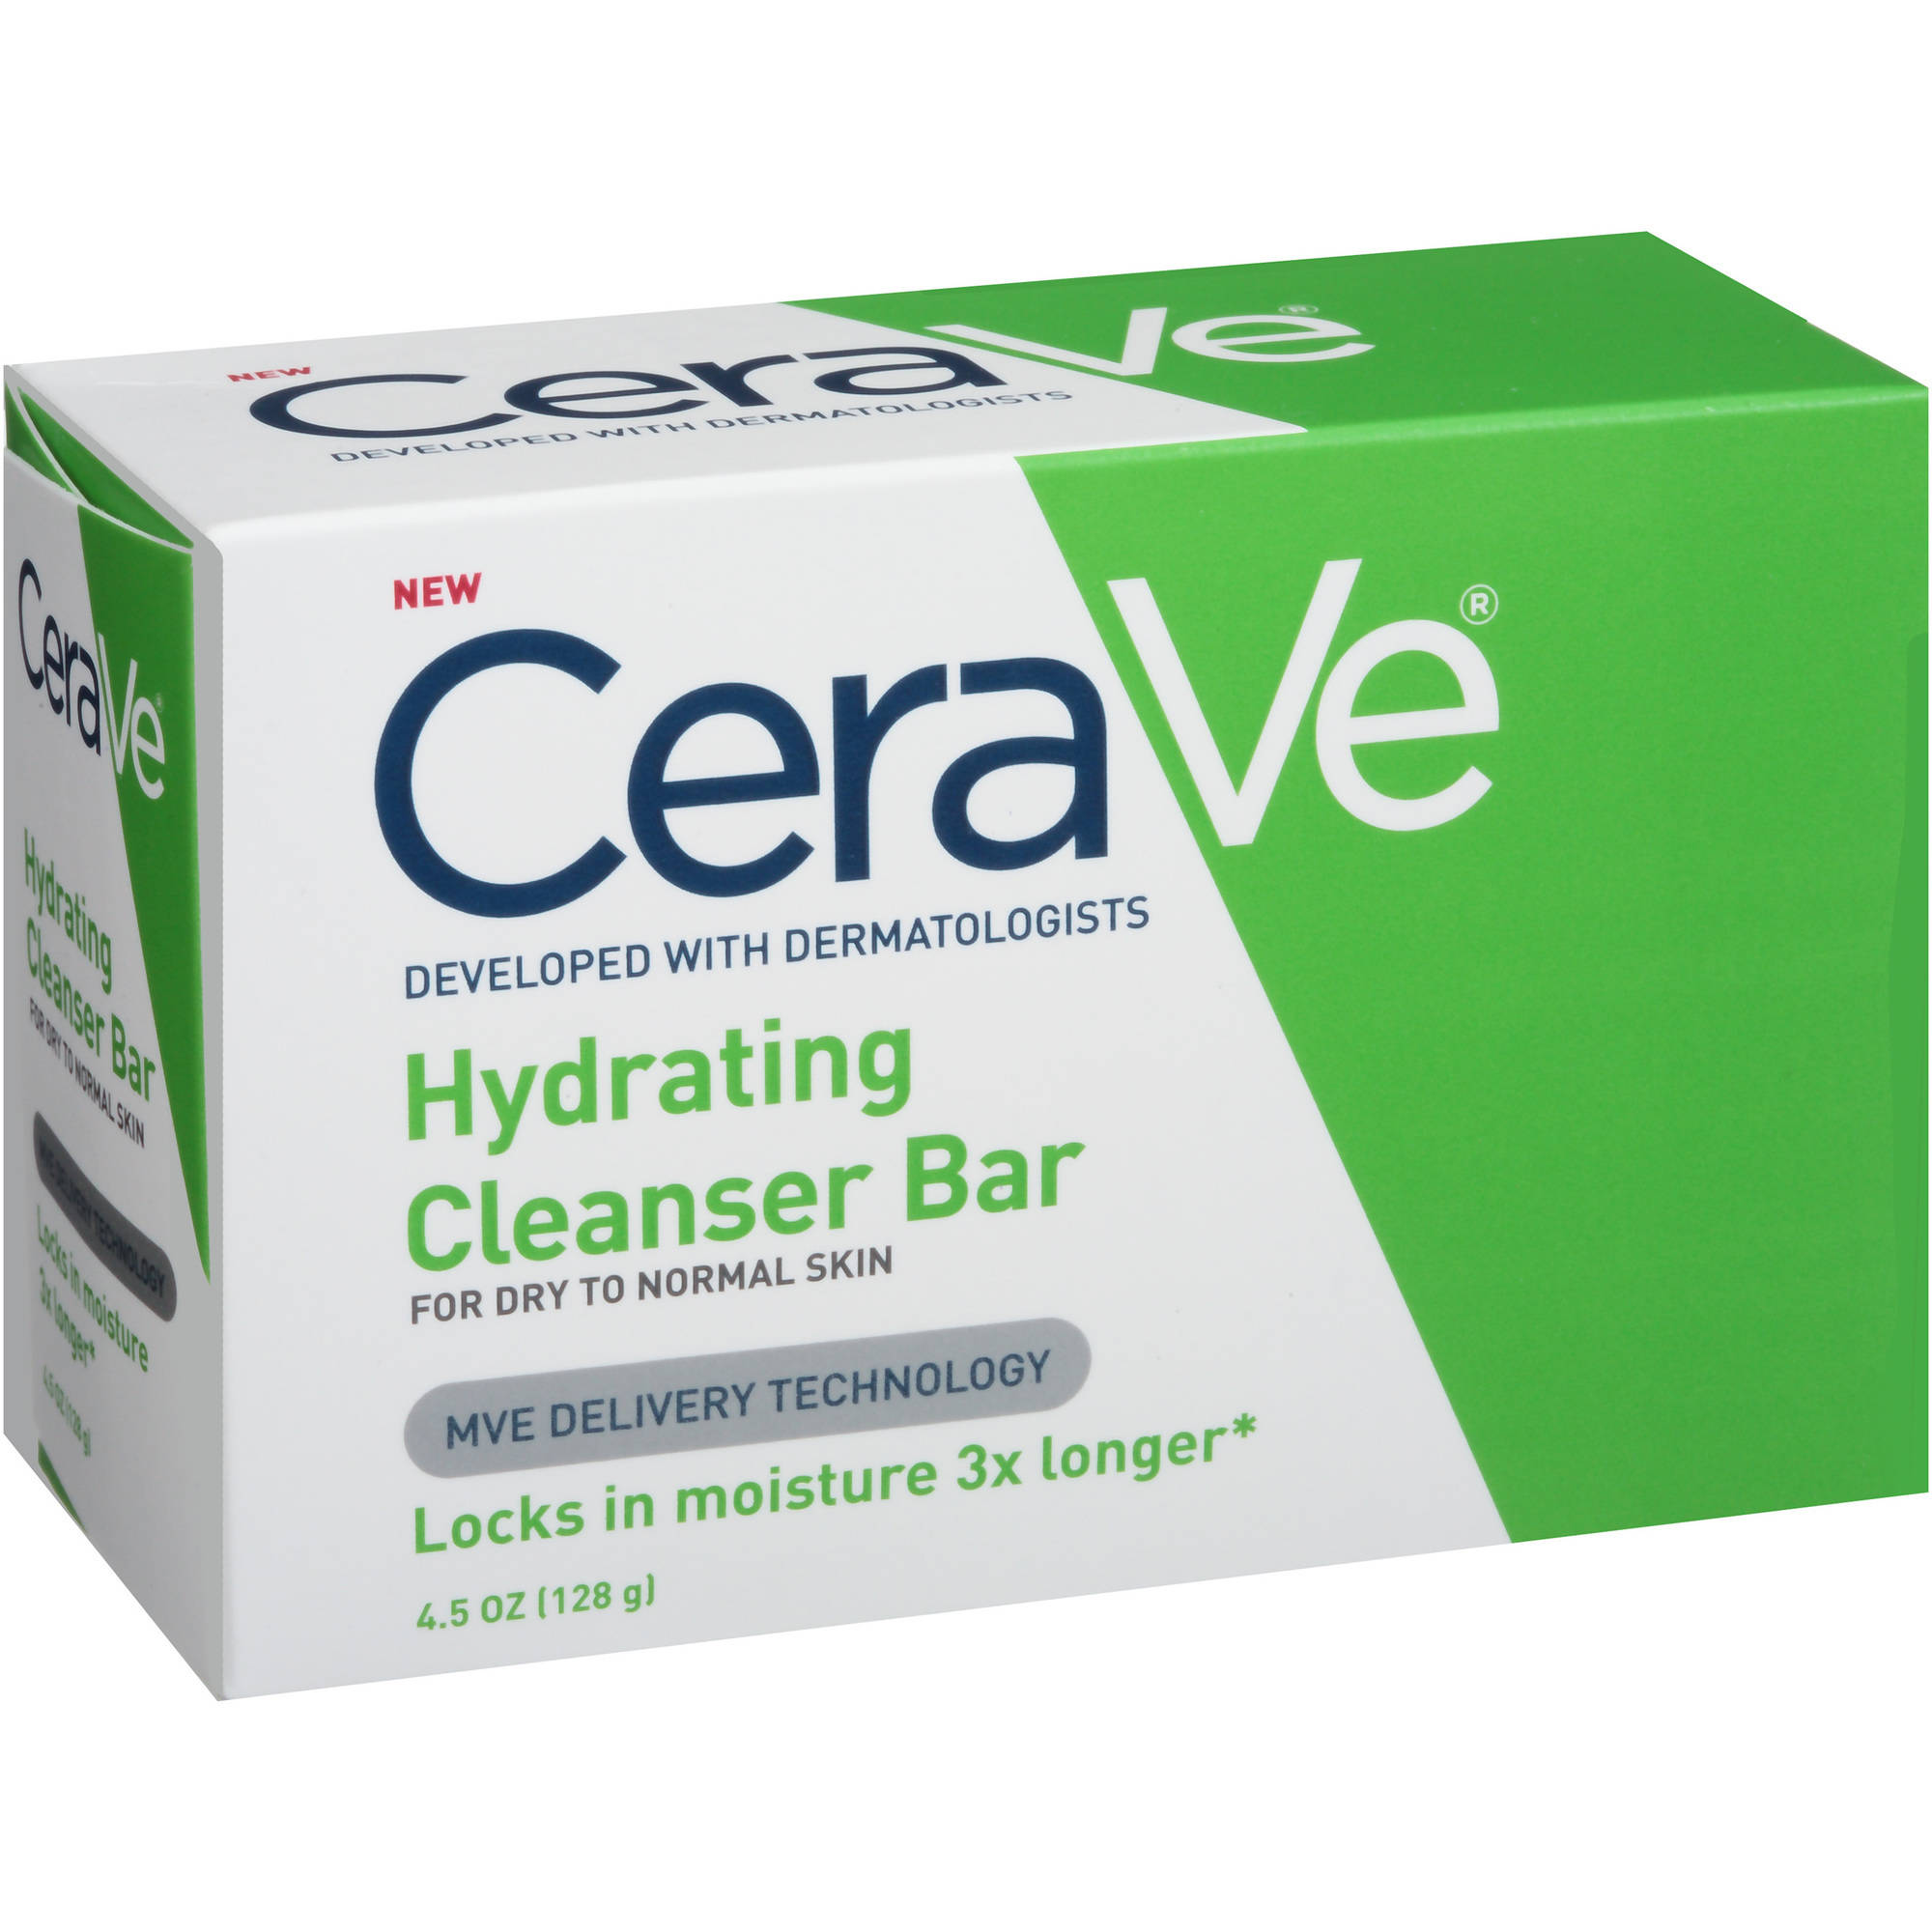 CeraVe Hydrating Cleanser Bar Soap, 4.5 oz